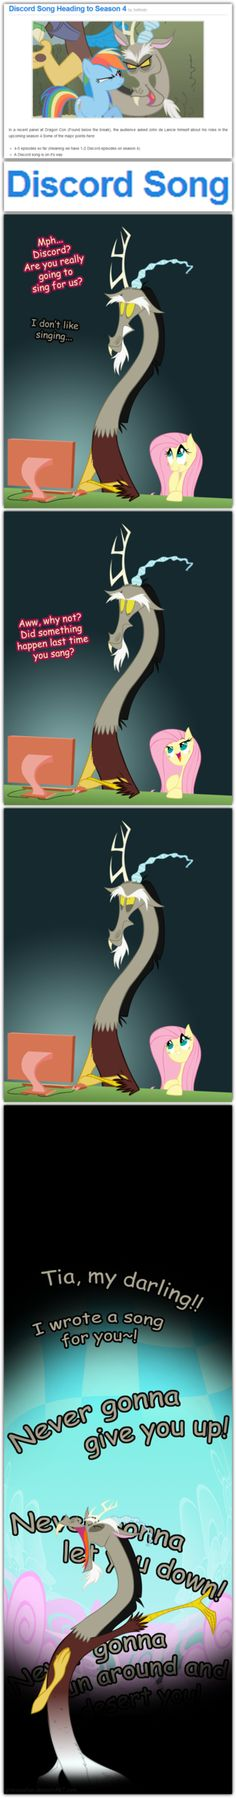 In the middle of my SONG? -season 4 spoilers- by grievousfan on deviantART